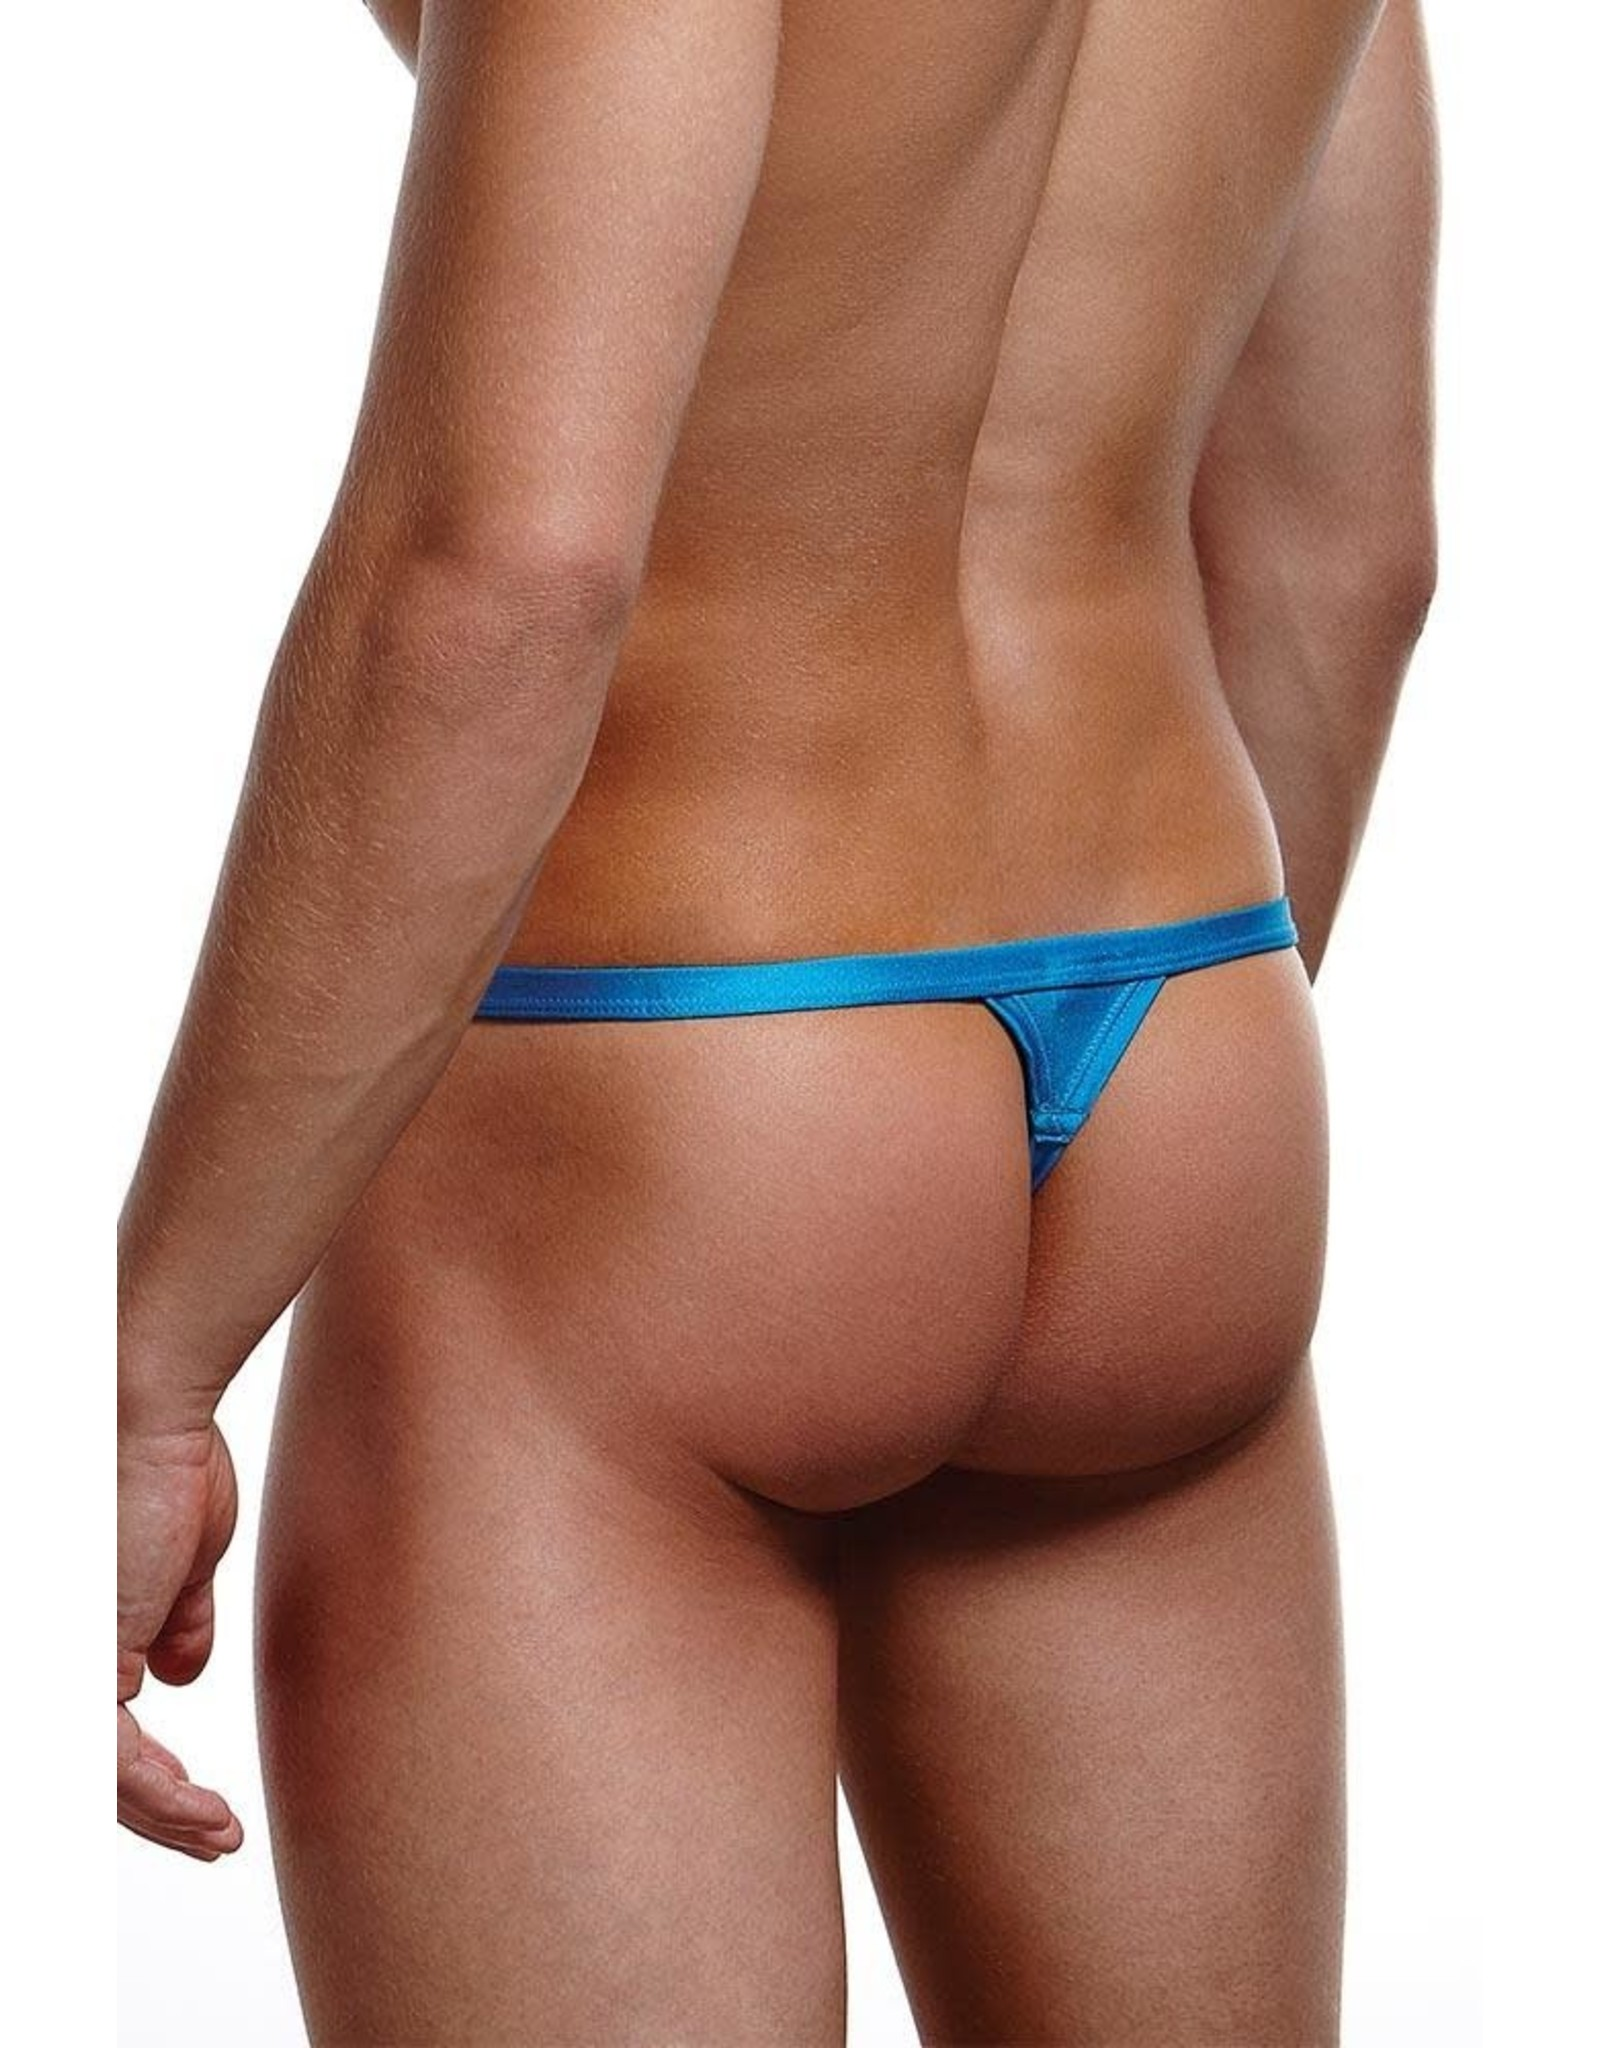 BACI ENVY - BREAKAWAY THONG - BLUE - SMALL/MEDIUM